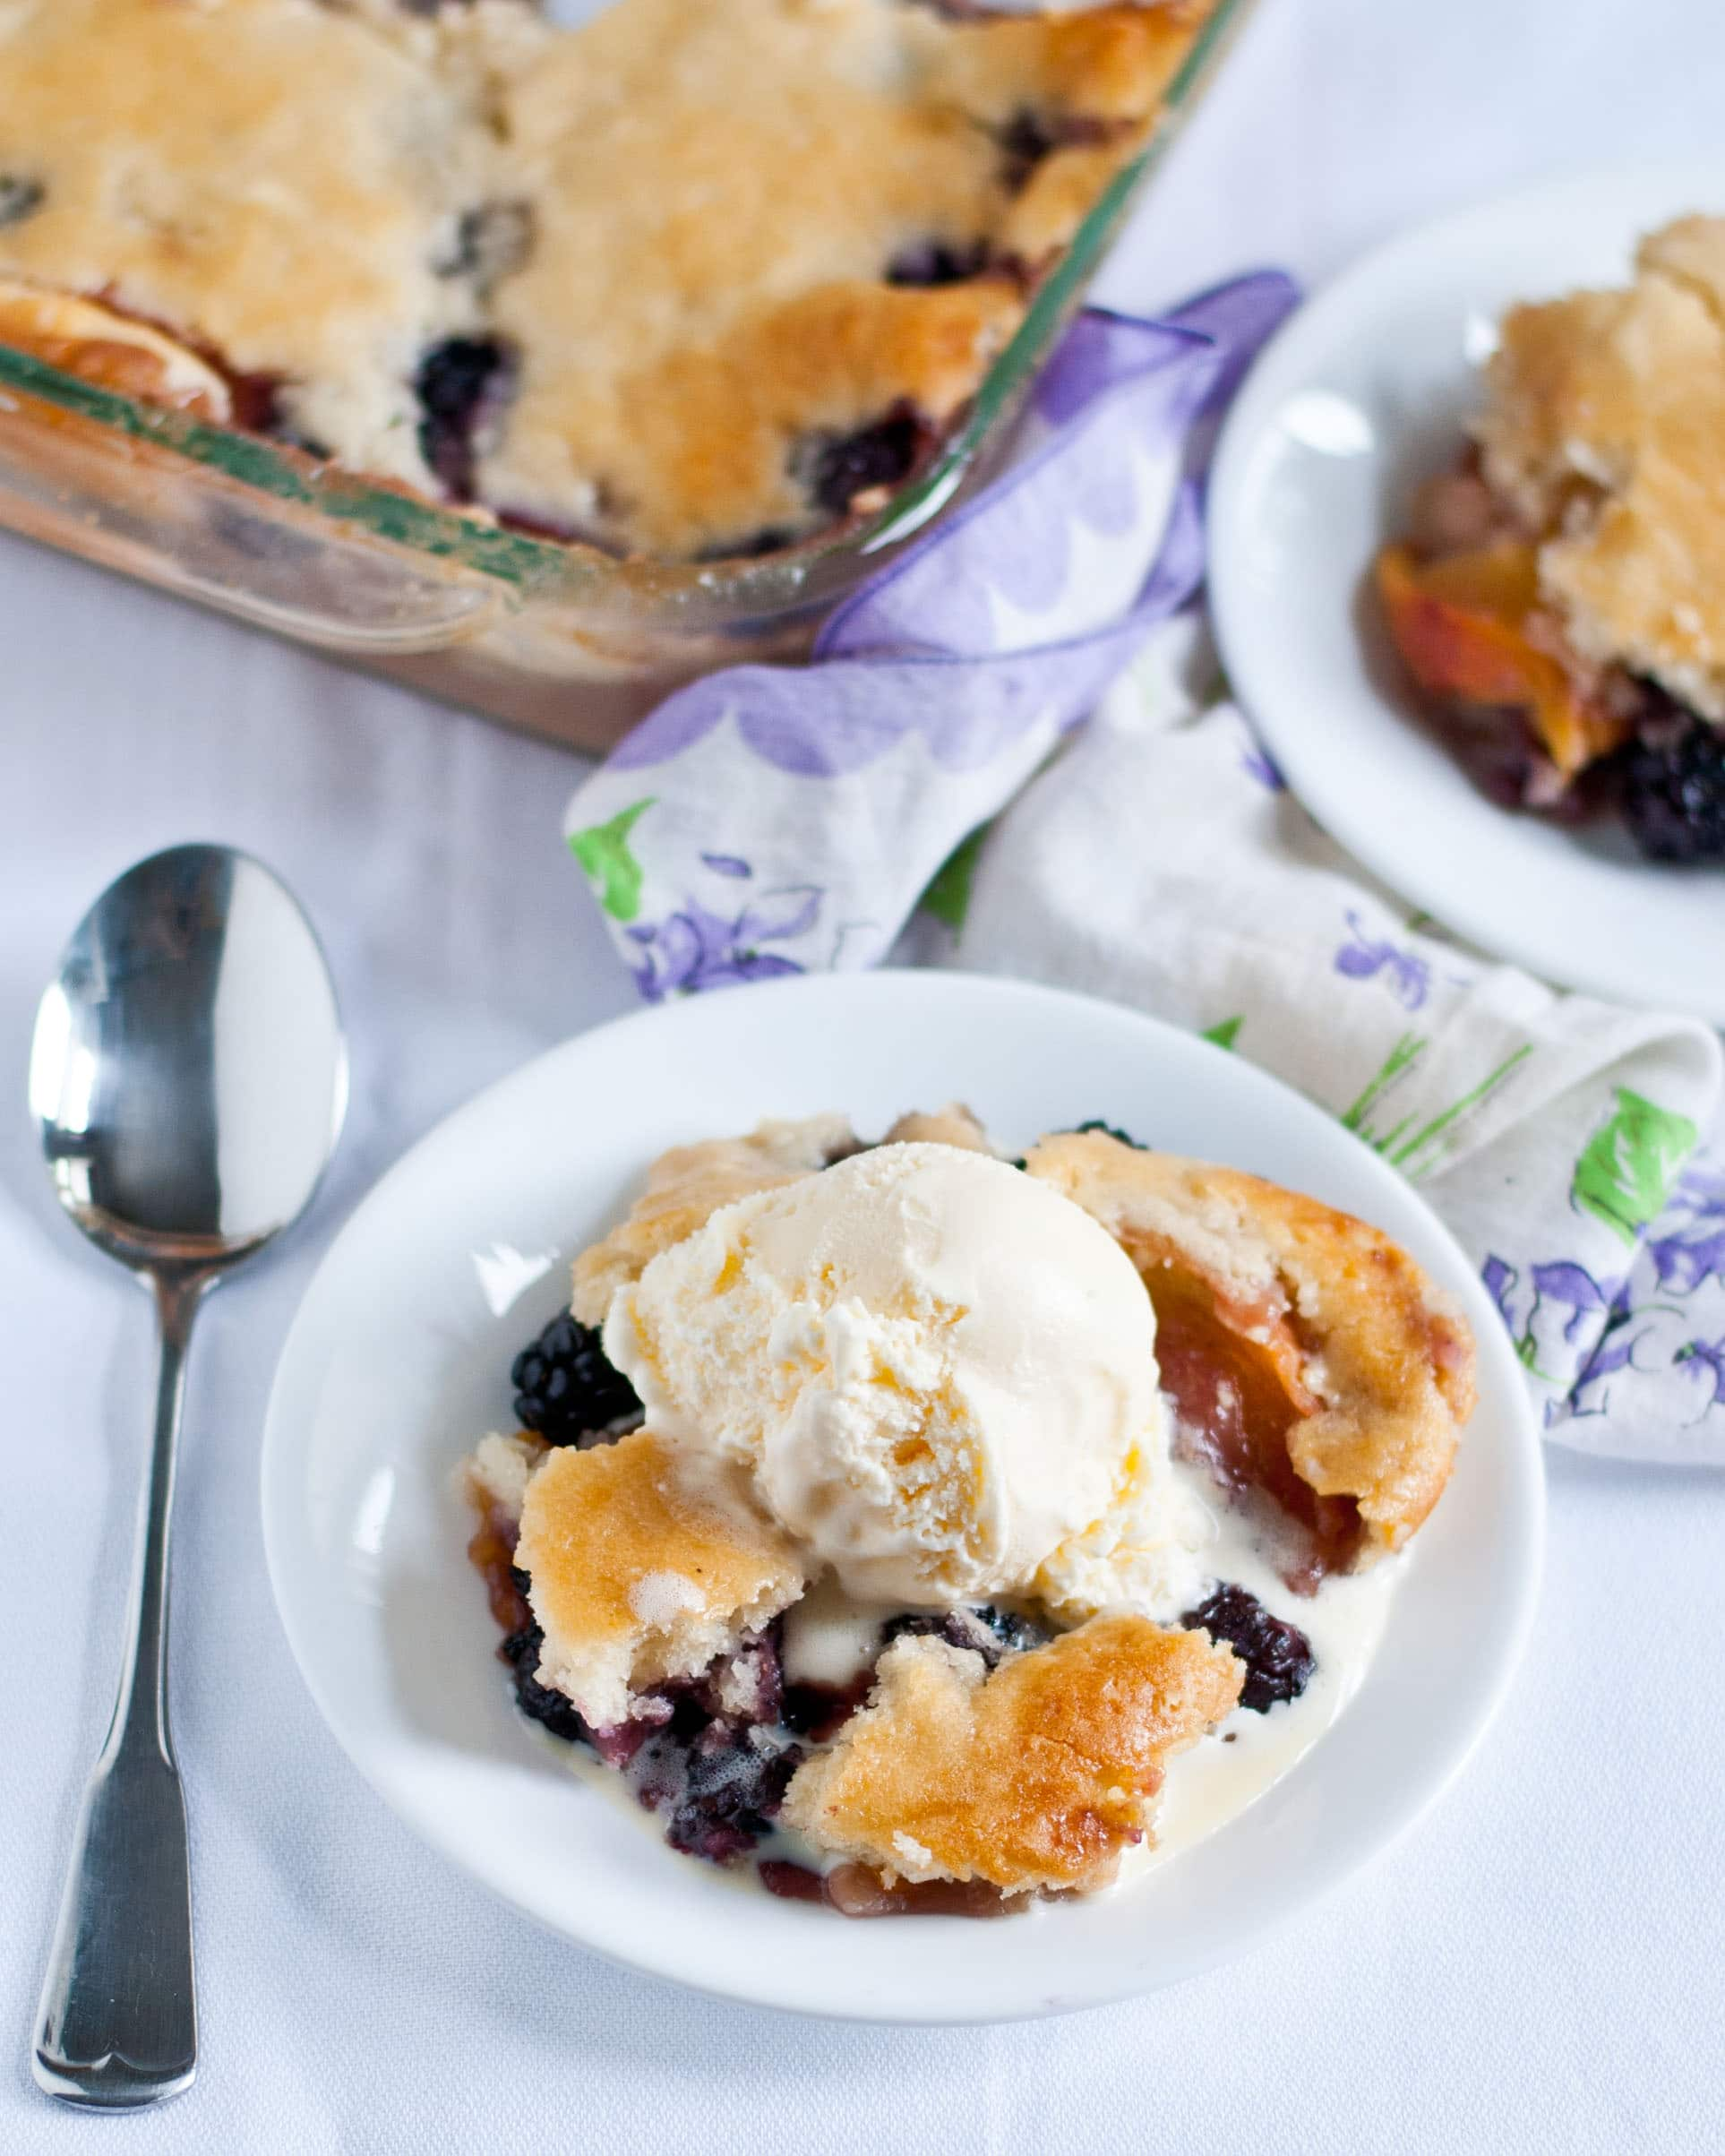 Blackberry Peach Cobbler | Neighborfoodblog.com